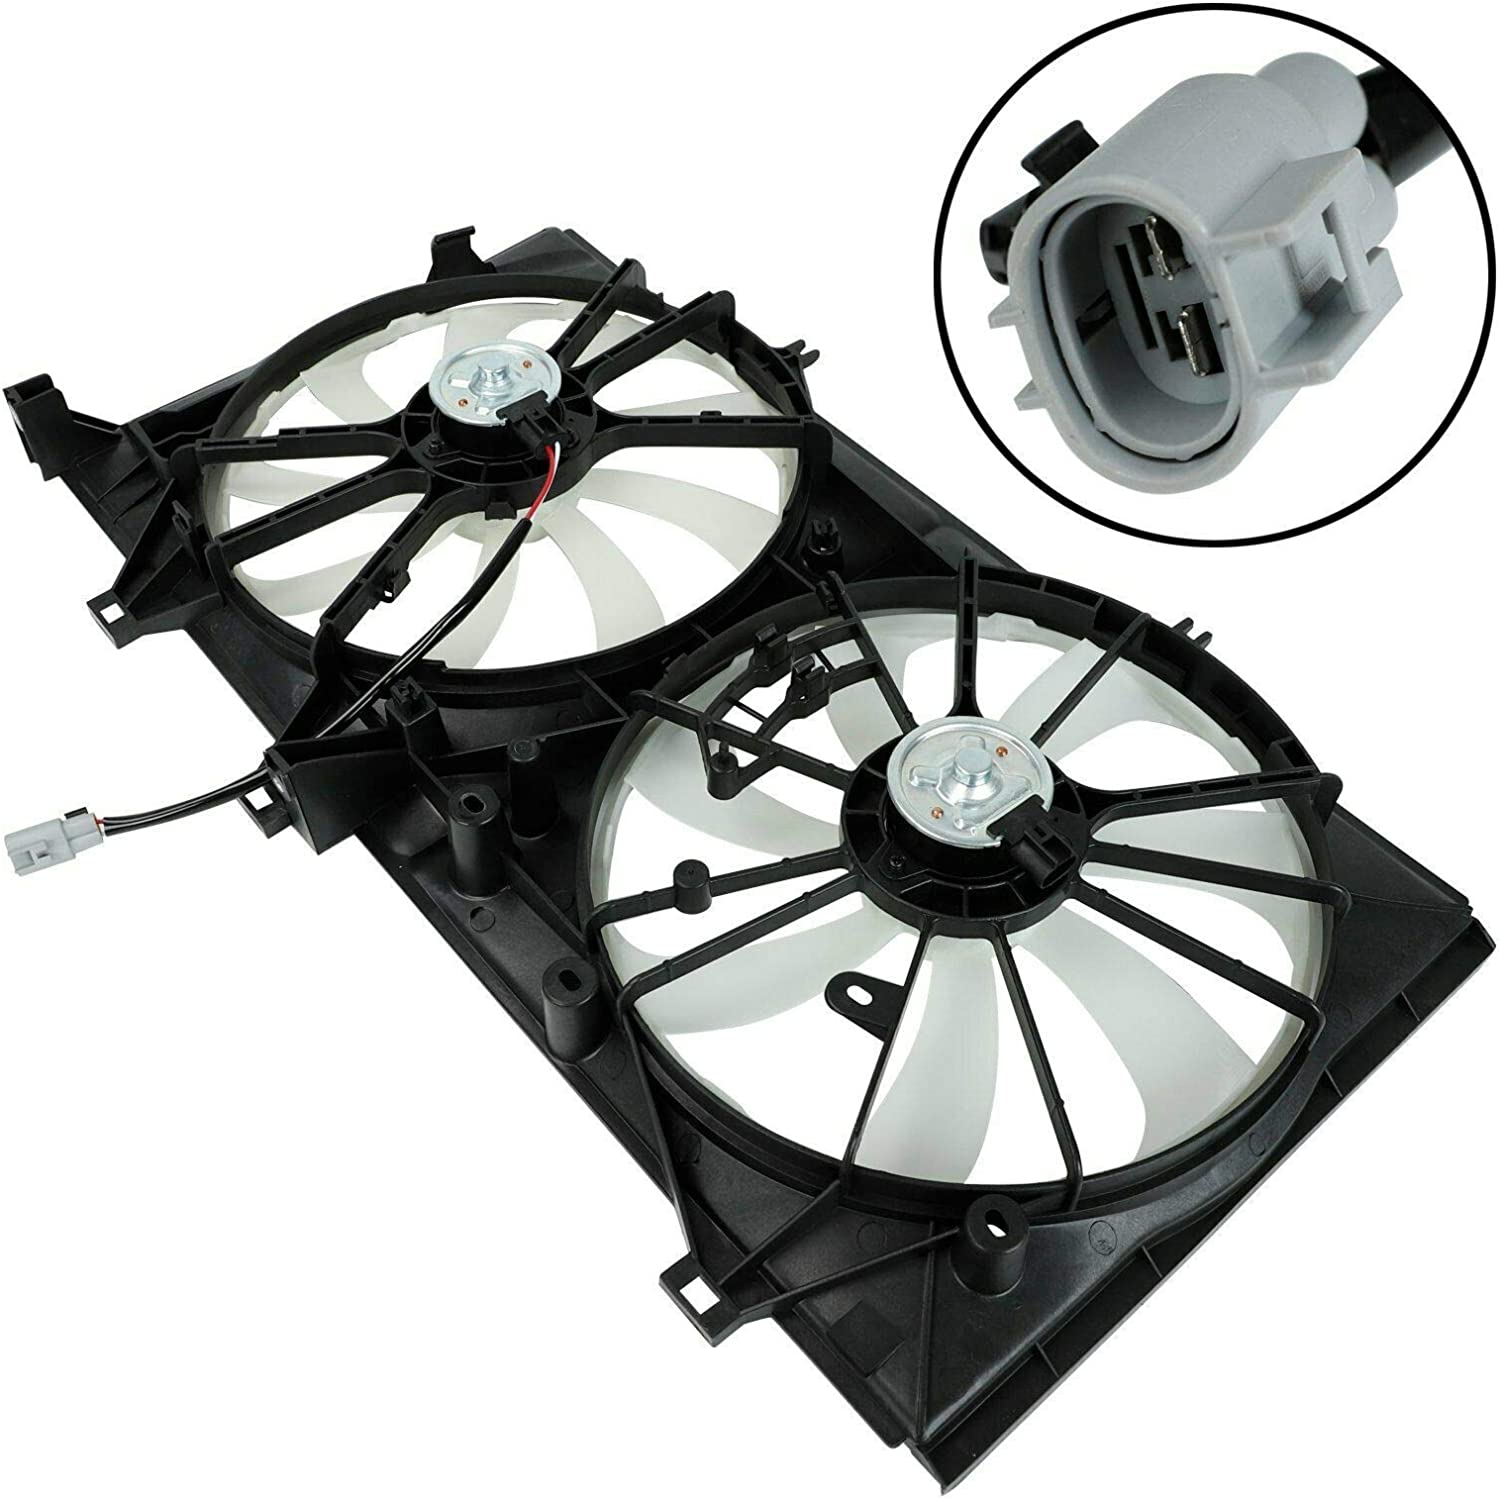 FYATTVA Dual Radiator Cool Fan Assembly Compatible with 2005-2014 Lexus ES350 Venza Avalon Camry